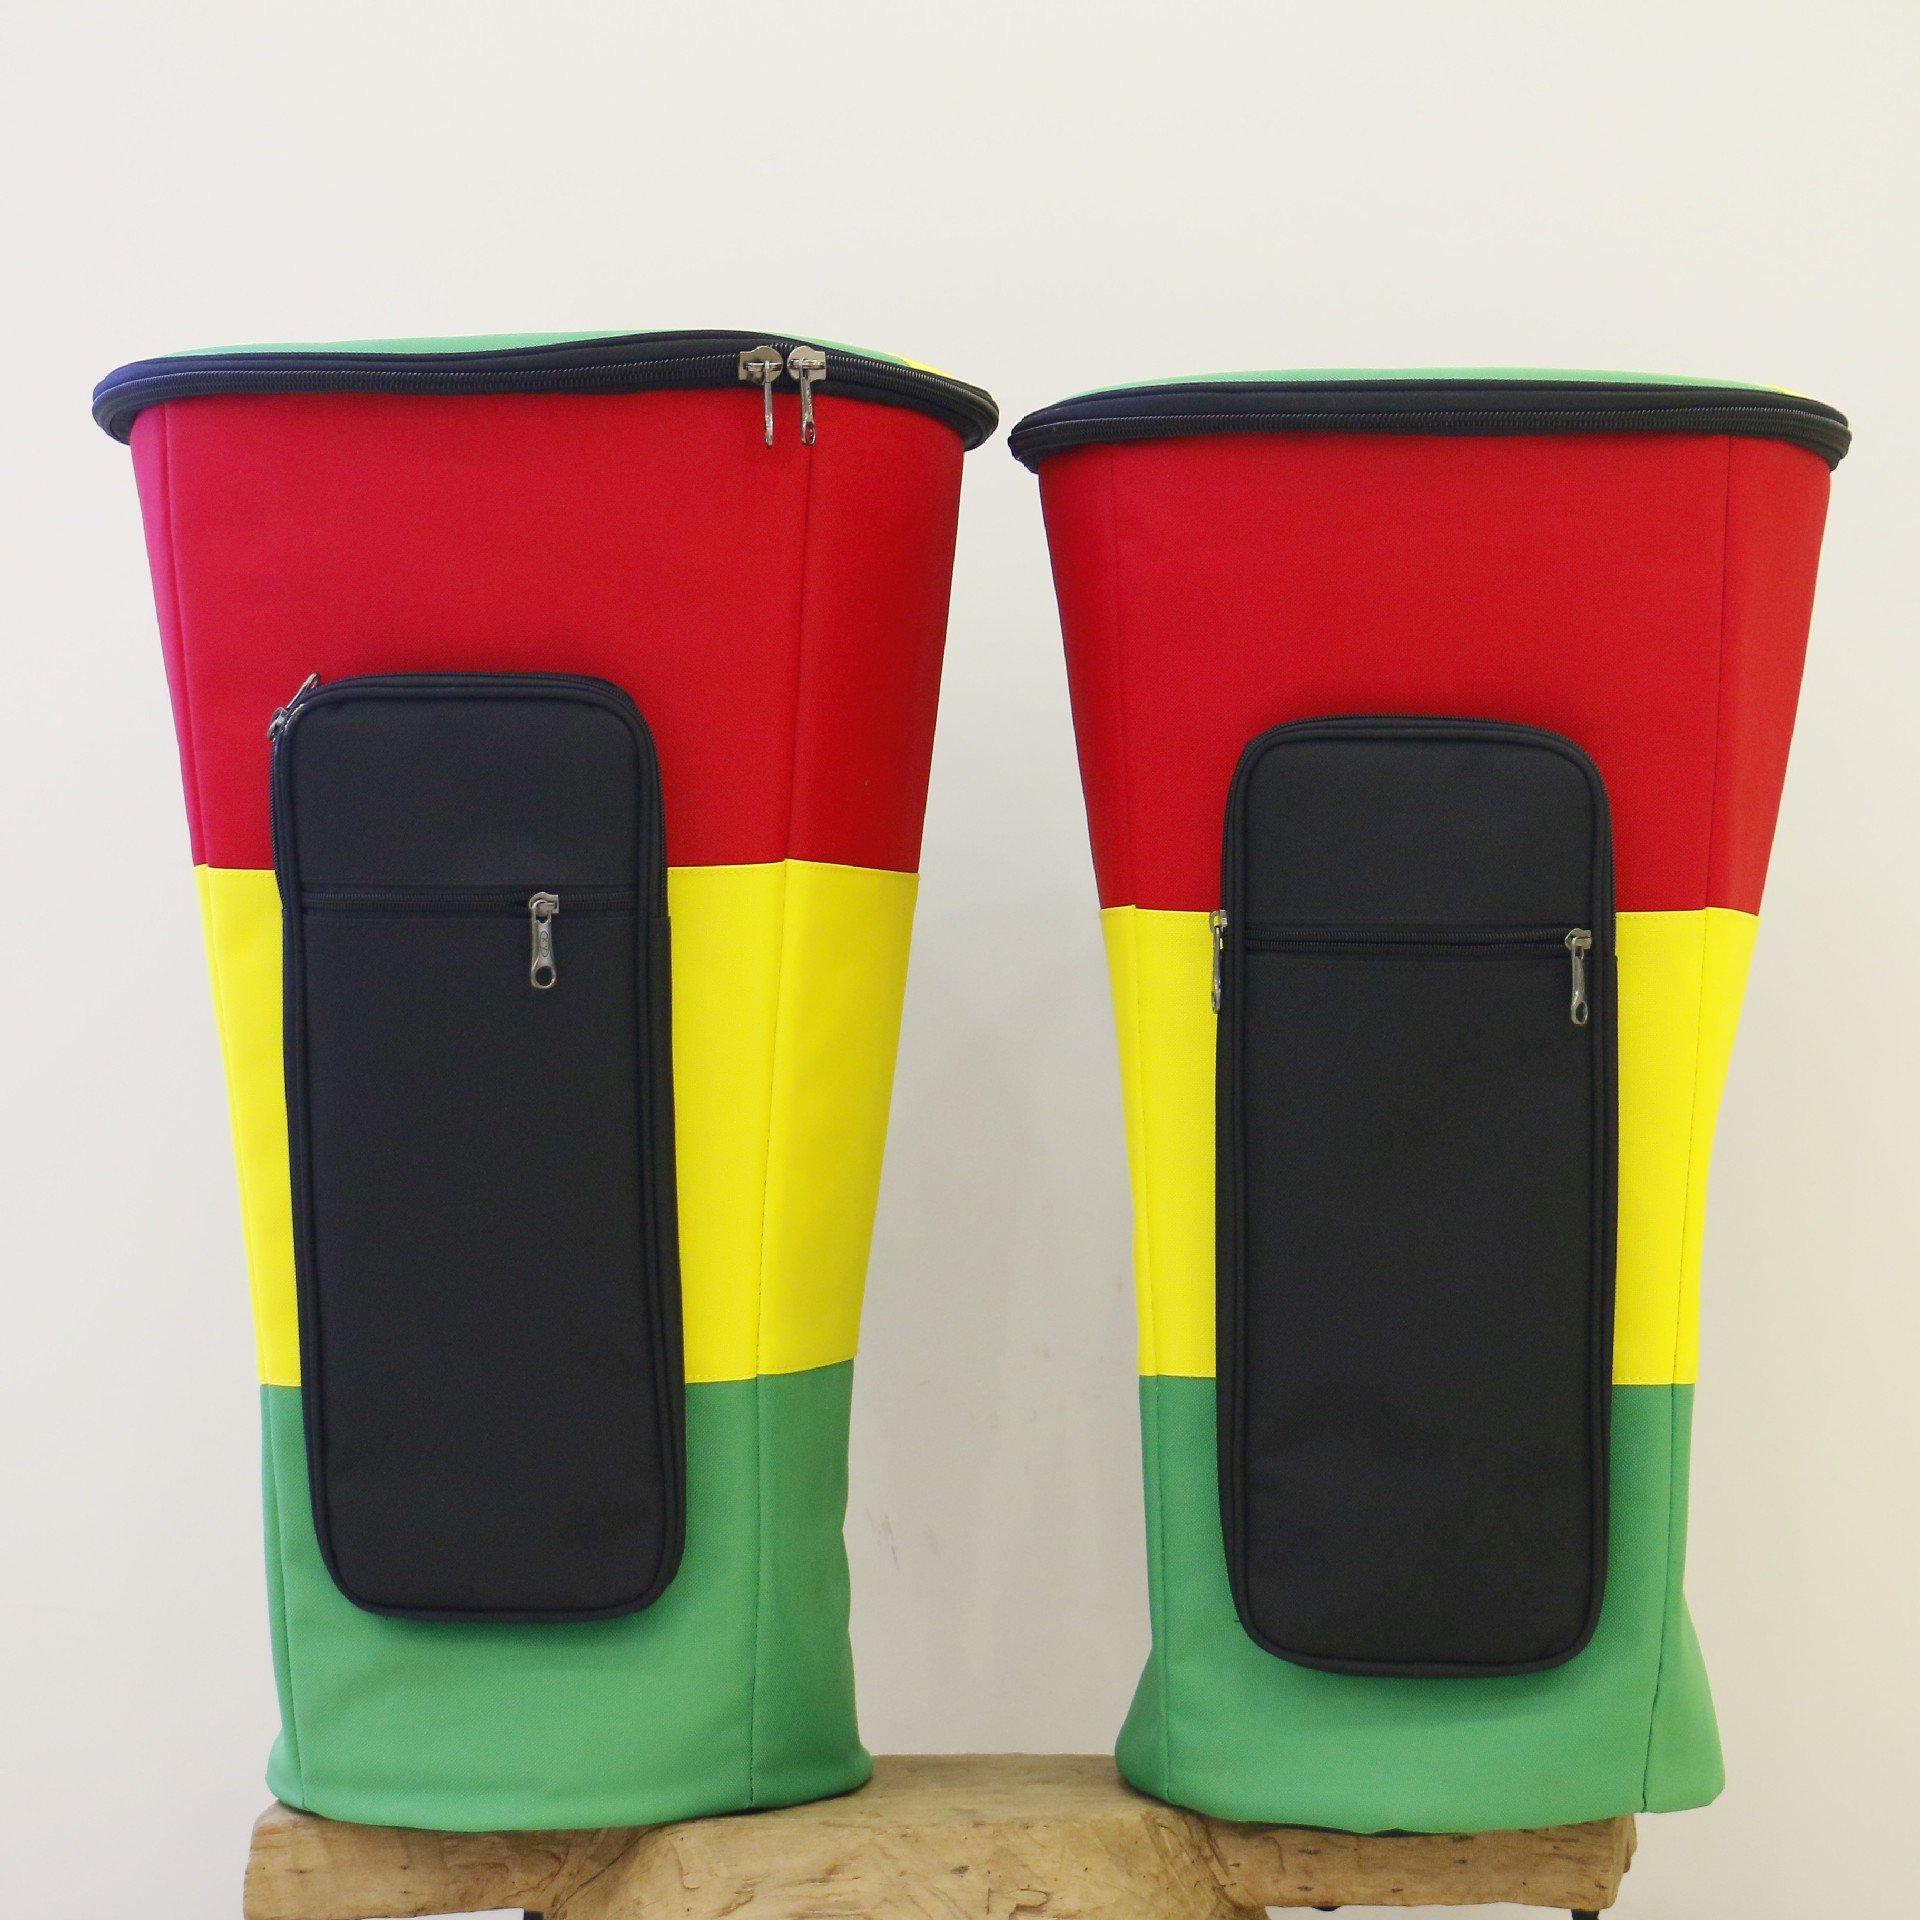 12 INCH Percussion African Drum Bags Red Yellow Green Heavy Duty Cloth Waterproof Tambourine Djembe Drum Storage Case with Adjustable Double Shoulder Strap GB02 (12 inch)